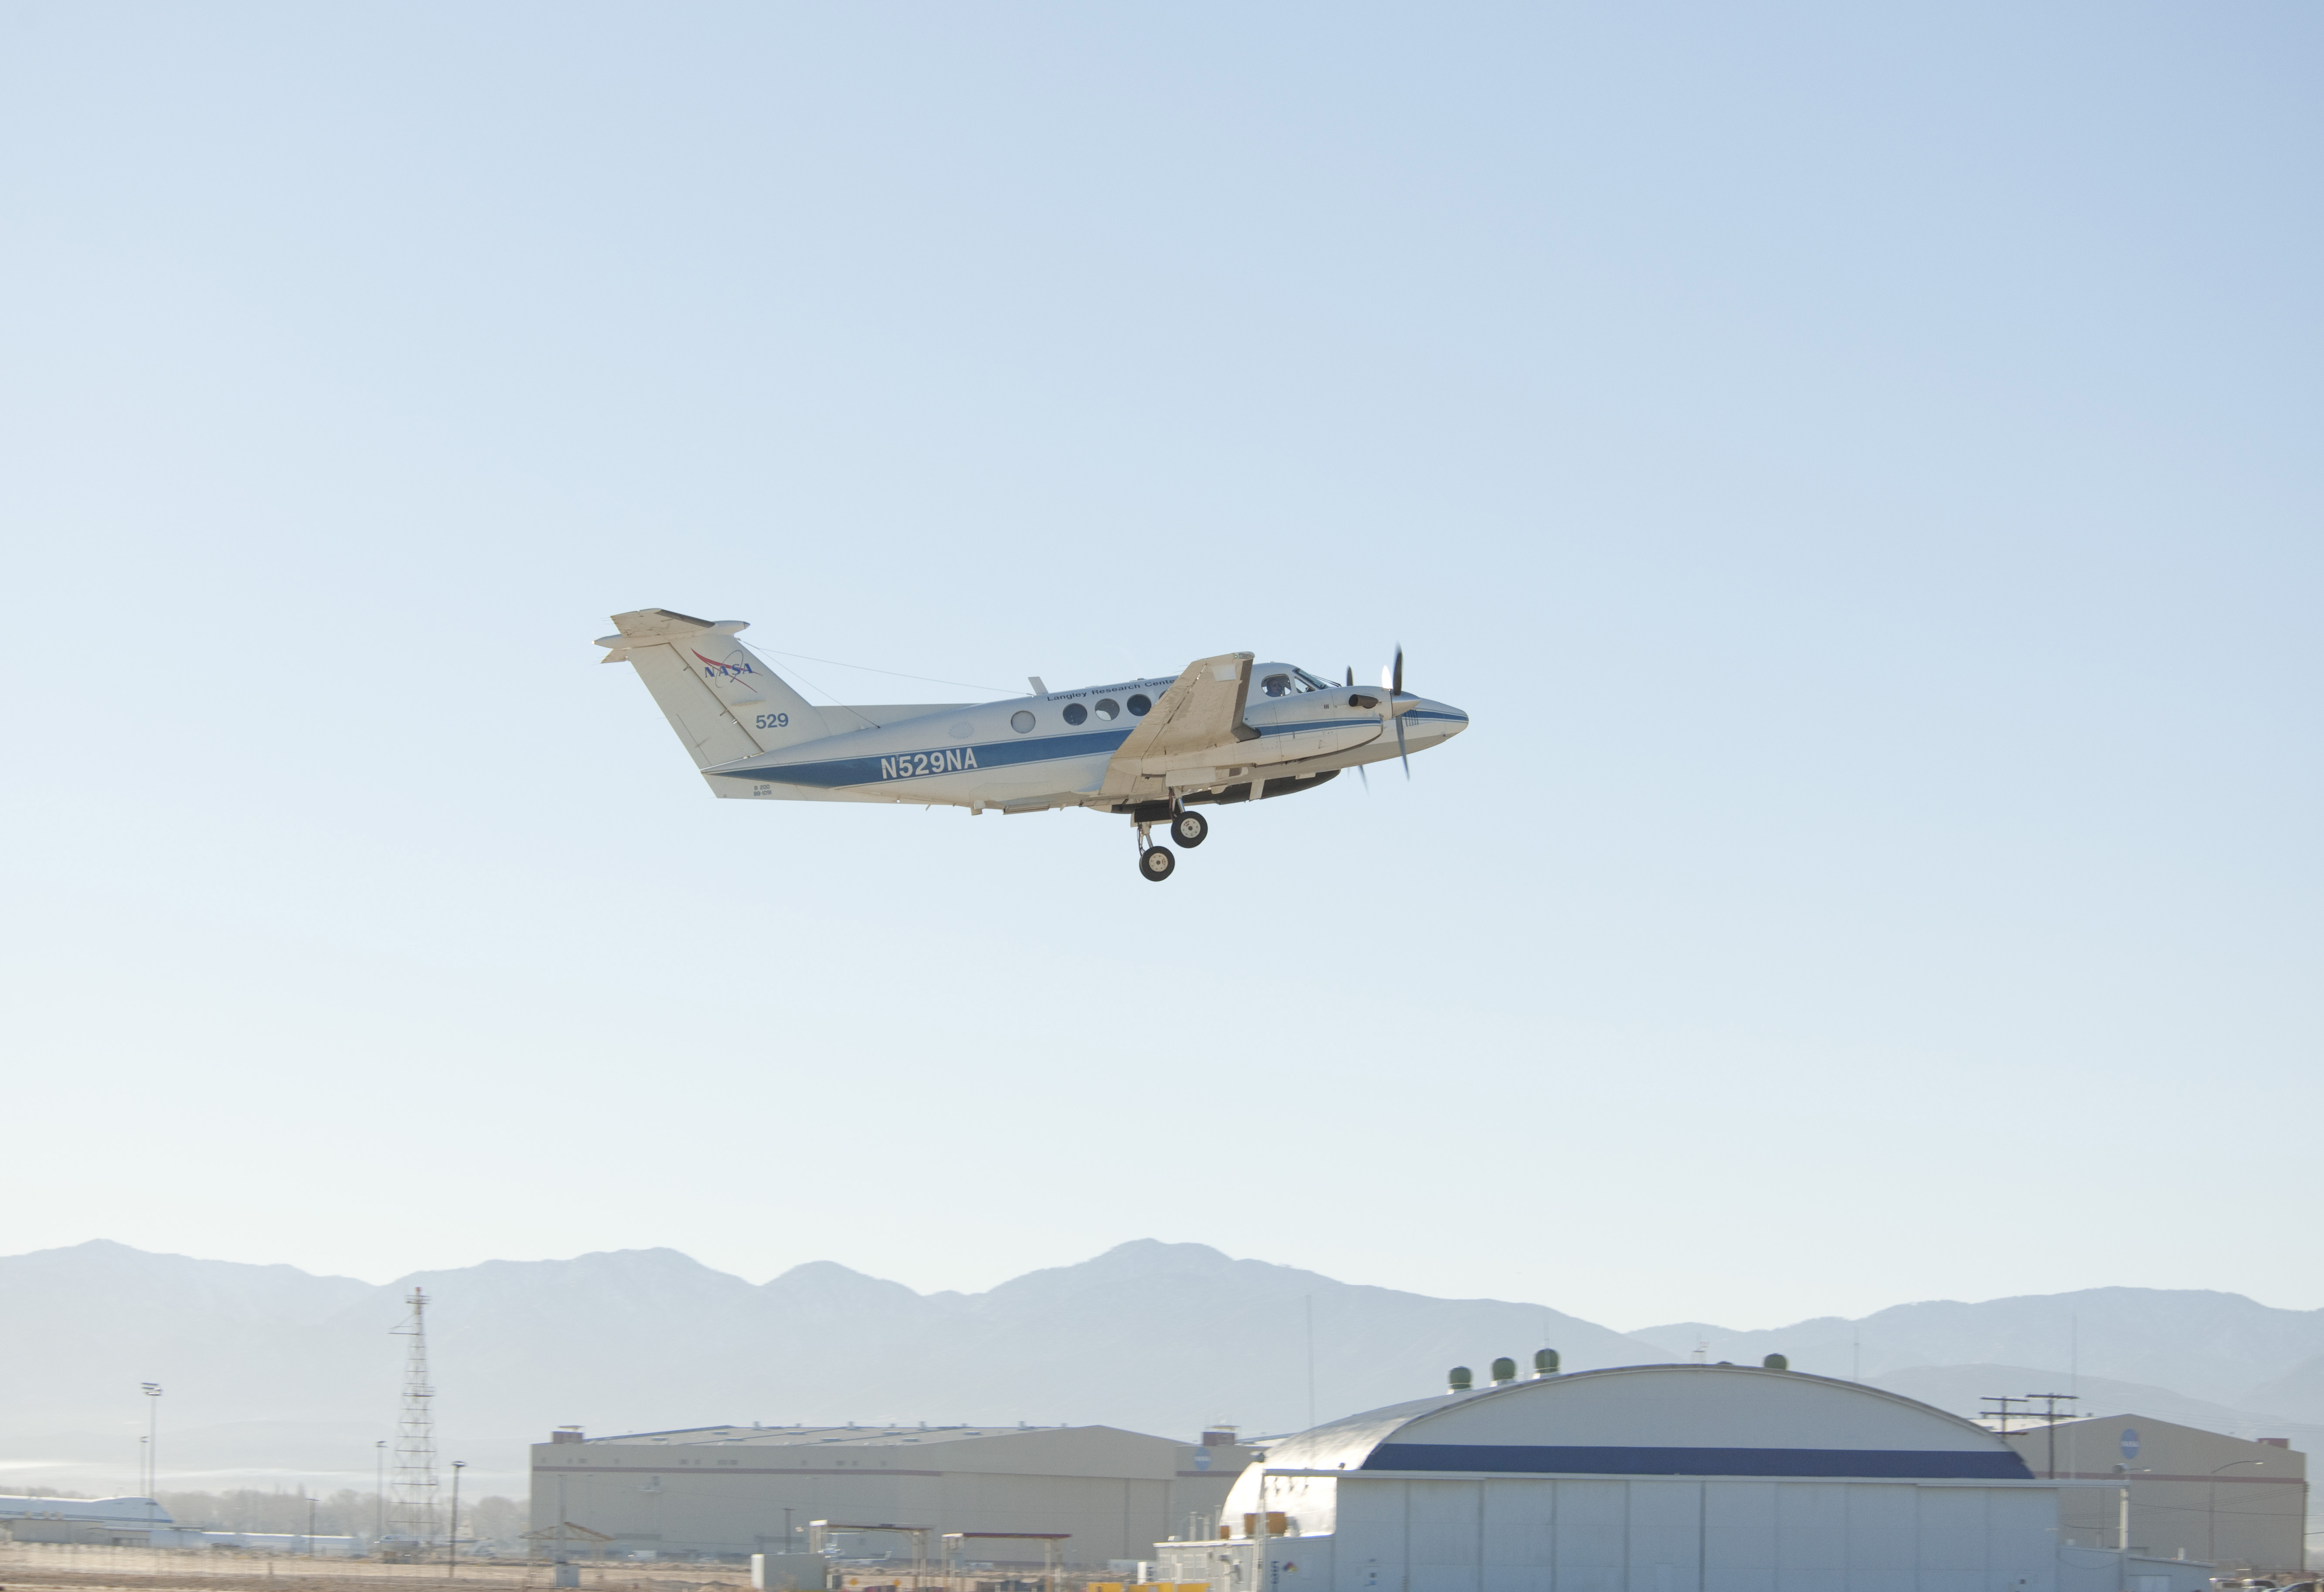 Nasa air quality research campaign concludes in california for Nasa air study